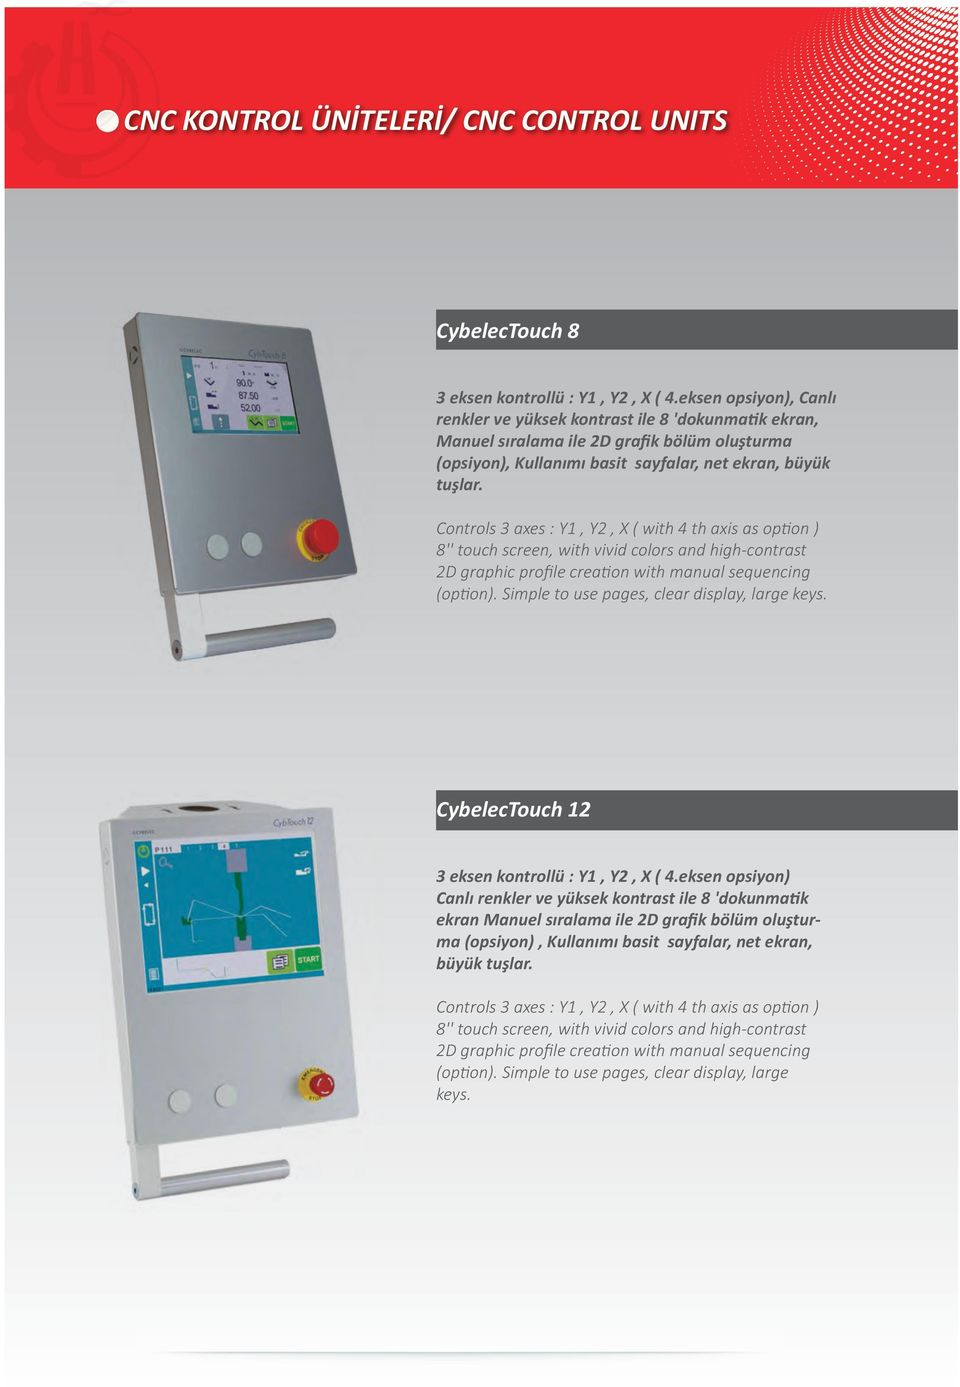 Controls 3 axes : Y1, Y, X ( with 4 th axis as option ) 8'' touch screen, with vivid colors and high-contrast D graphic profile creation with manual sequencing (option).